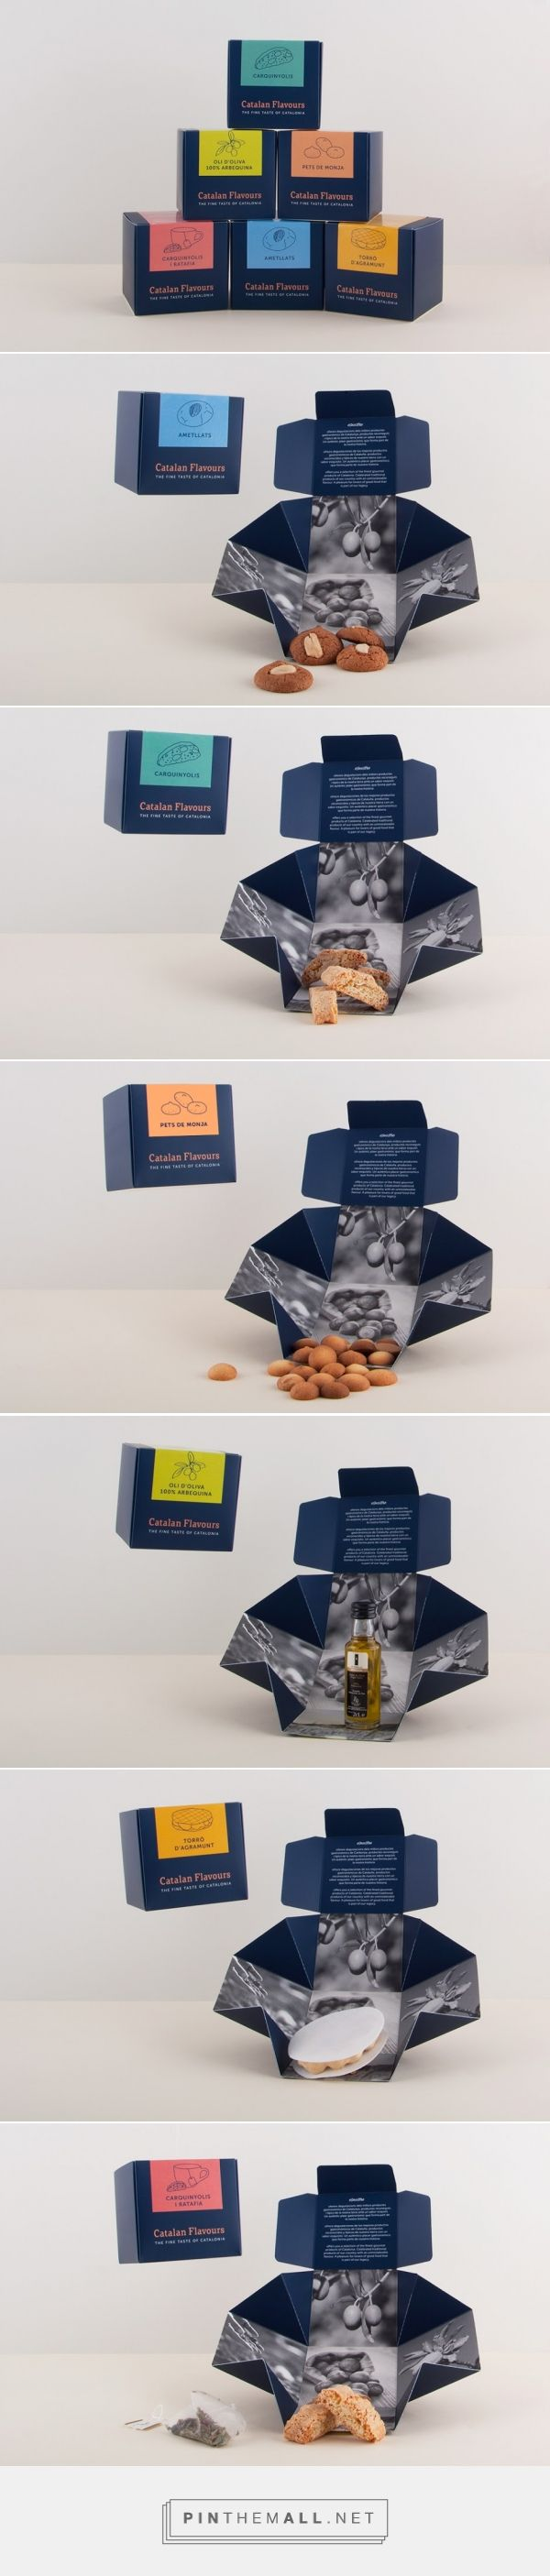 Catalan Flavours - Packaging of the World - Creative Package Design Gallery - http://www.packagingoftheworld.com/2016/05/catalan-flavours.html